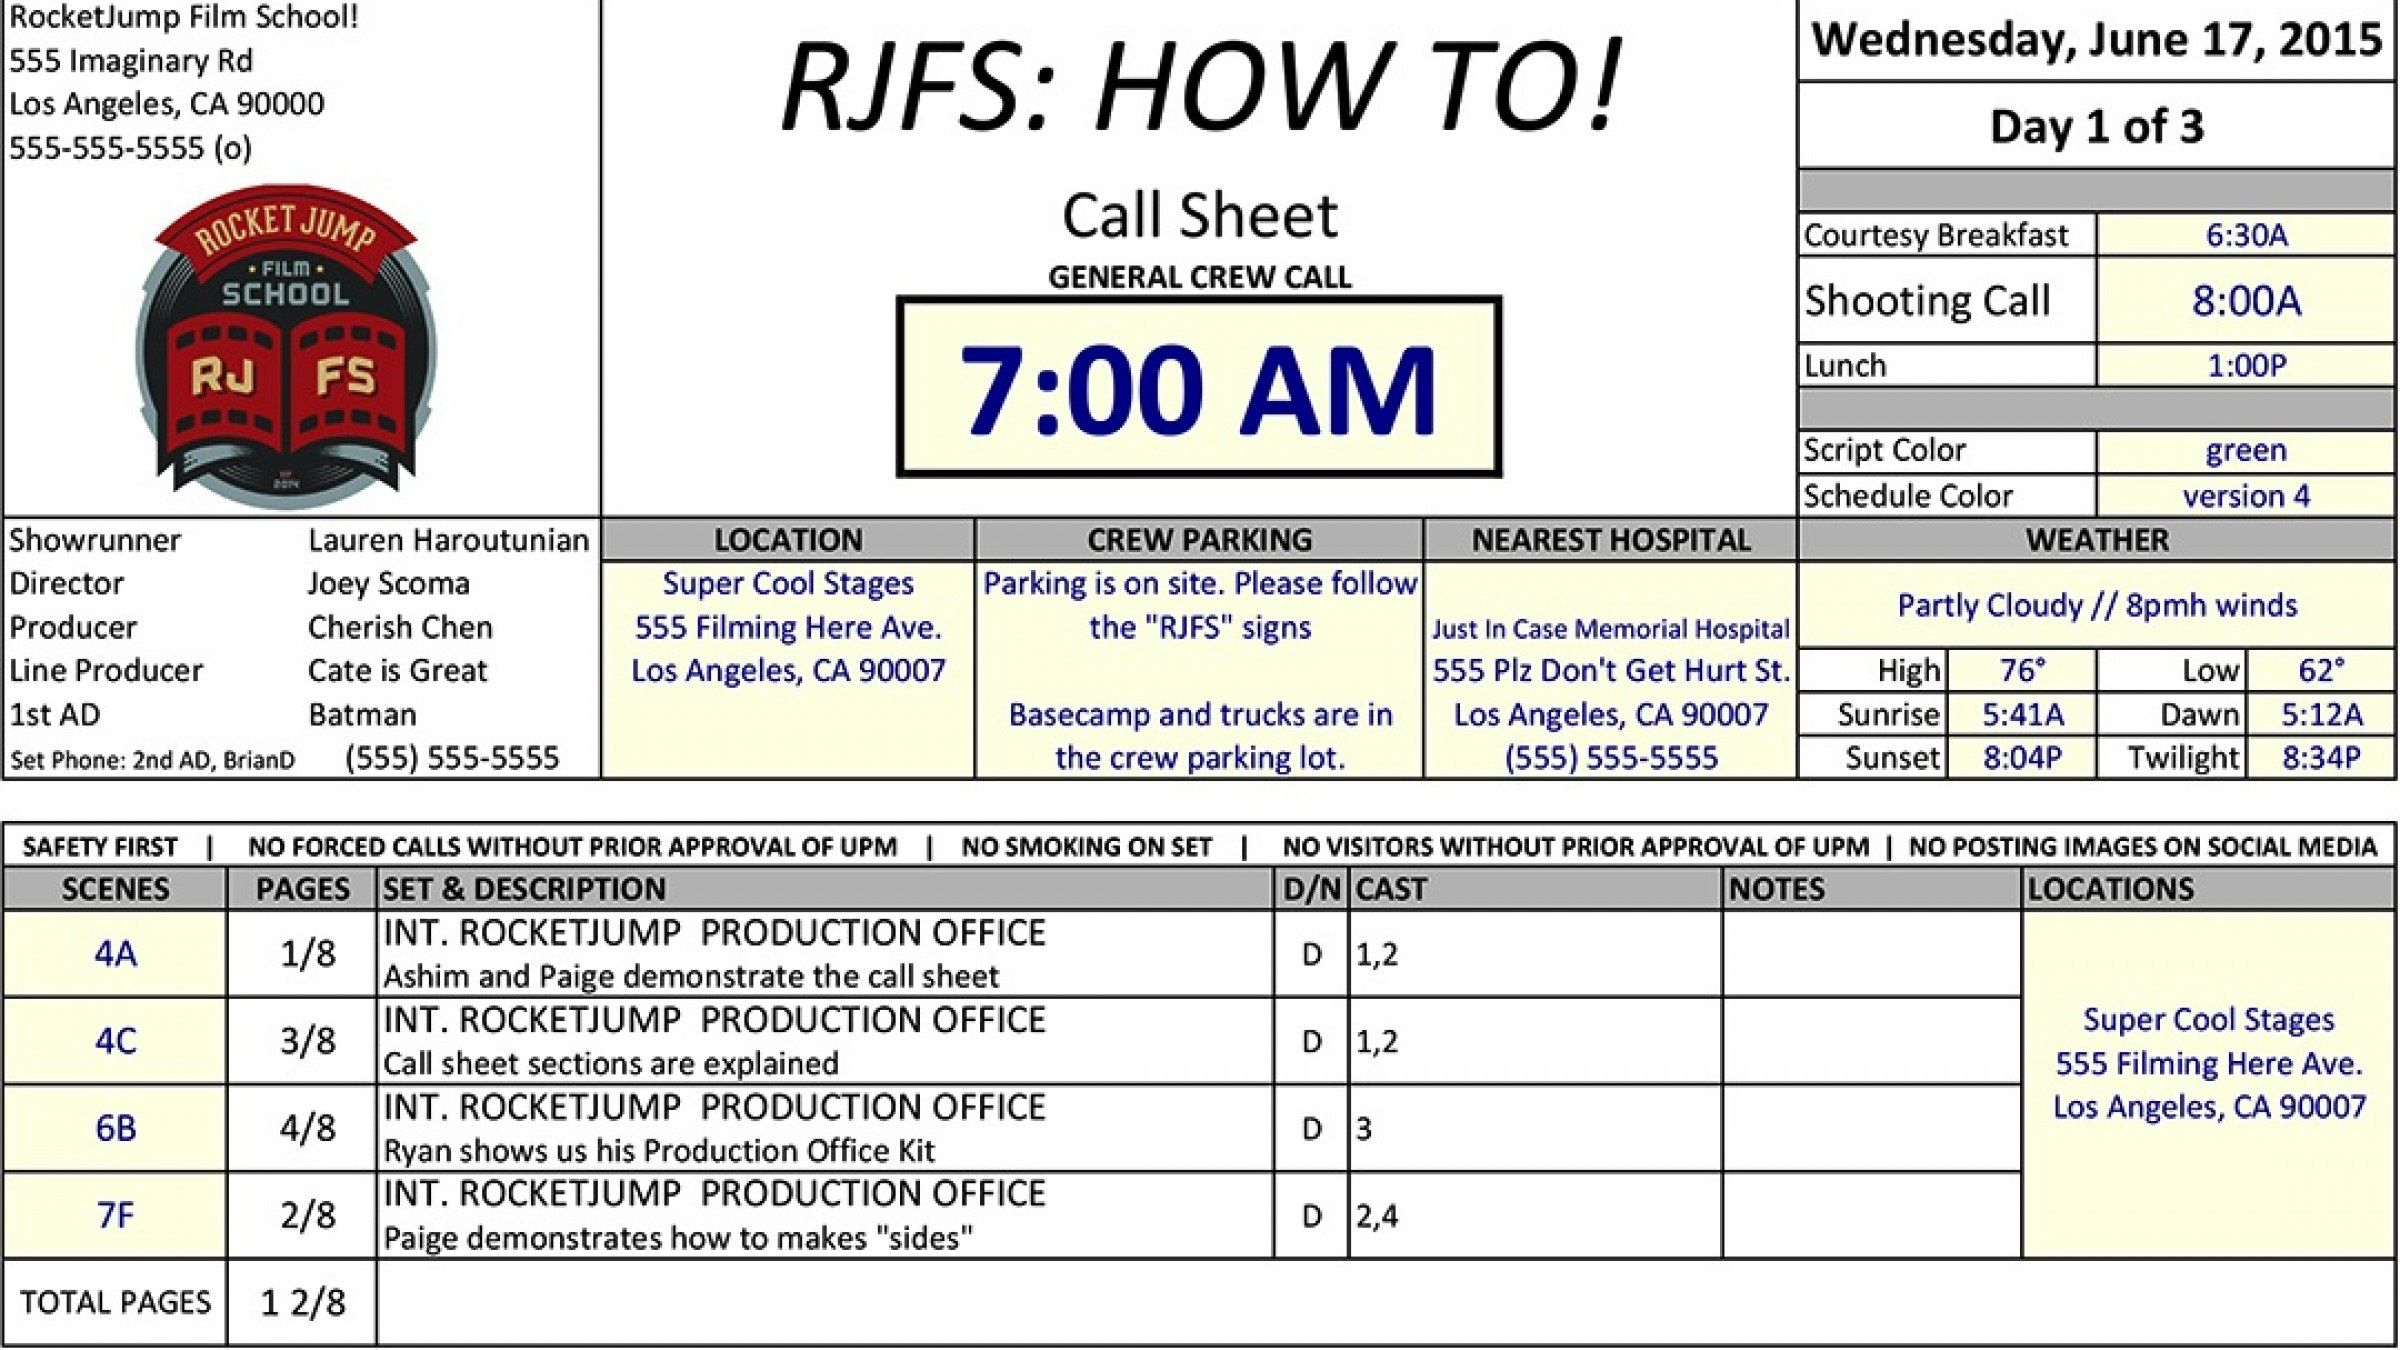 003 Staggering Film Call Sheet Sample High Resolution  Template Download Excel Google DocFull